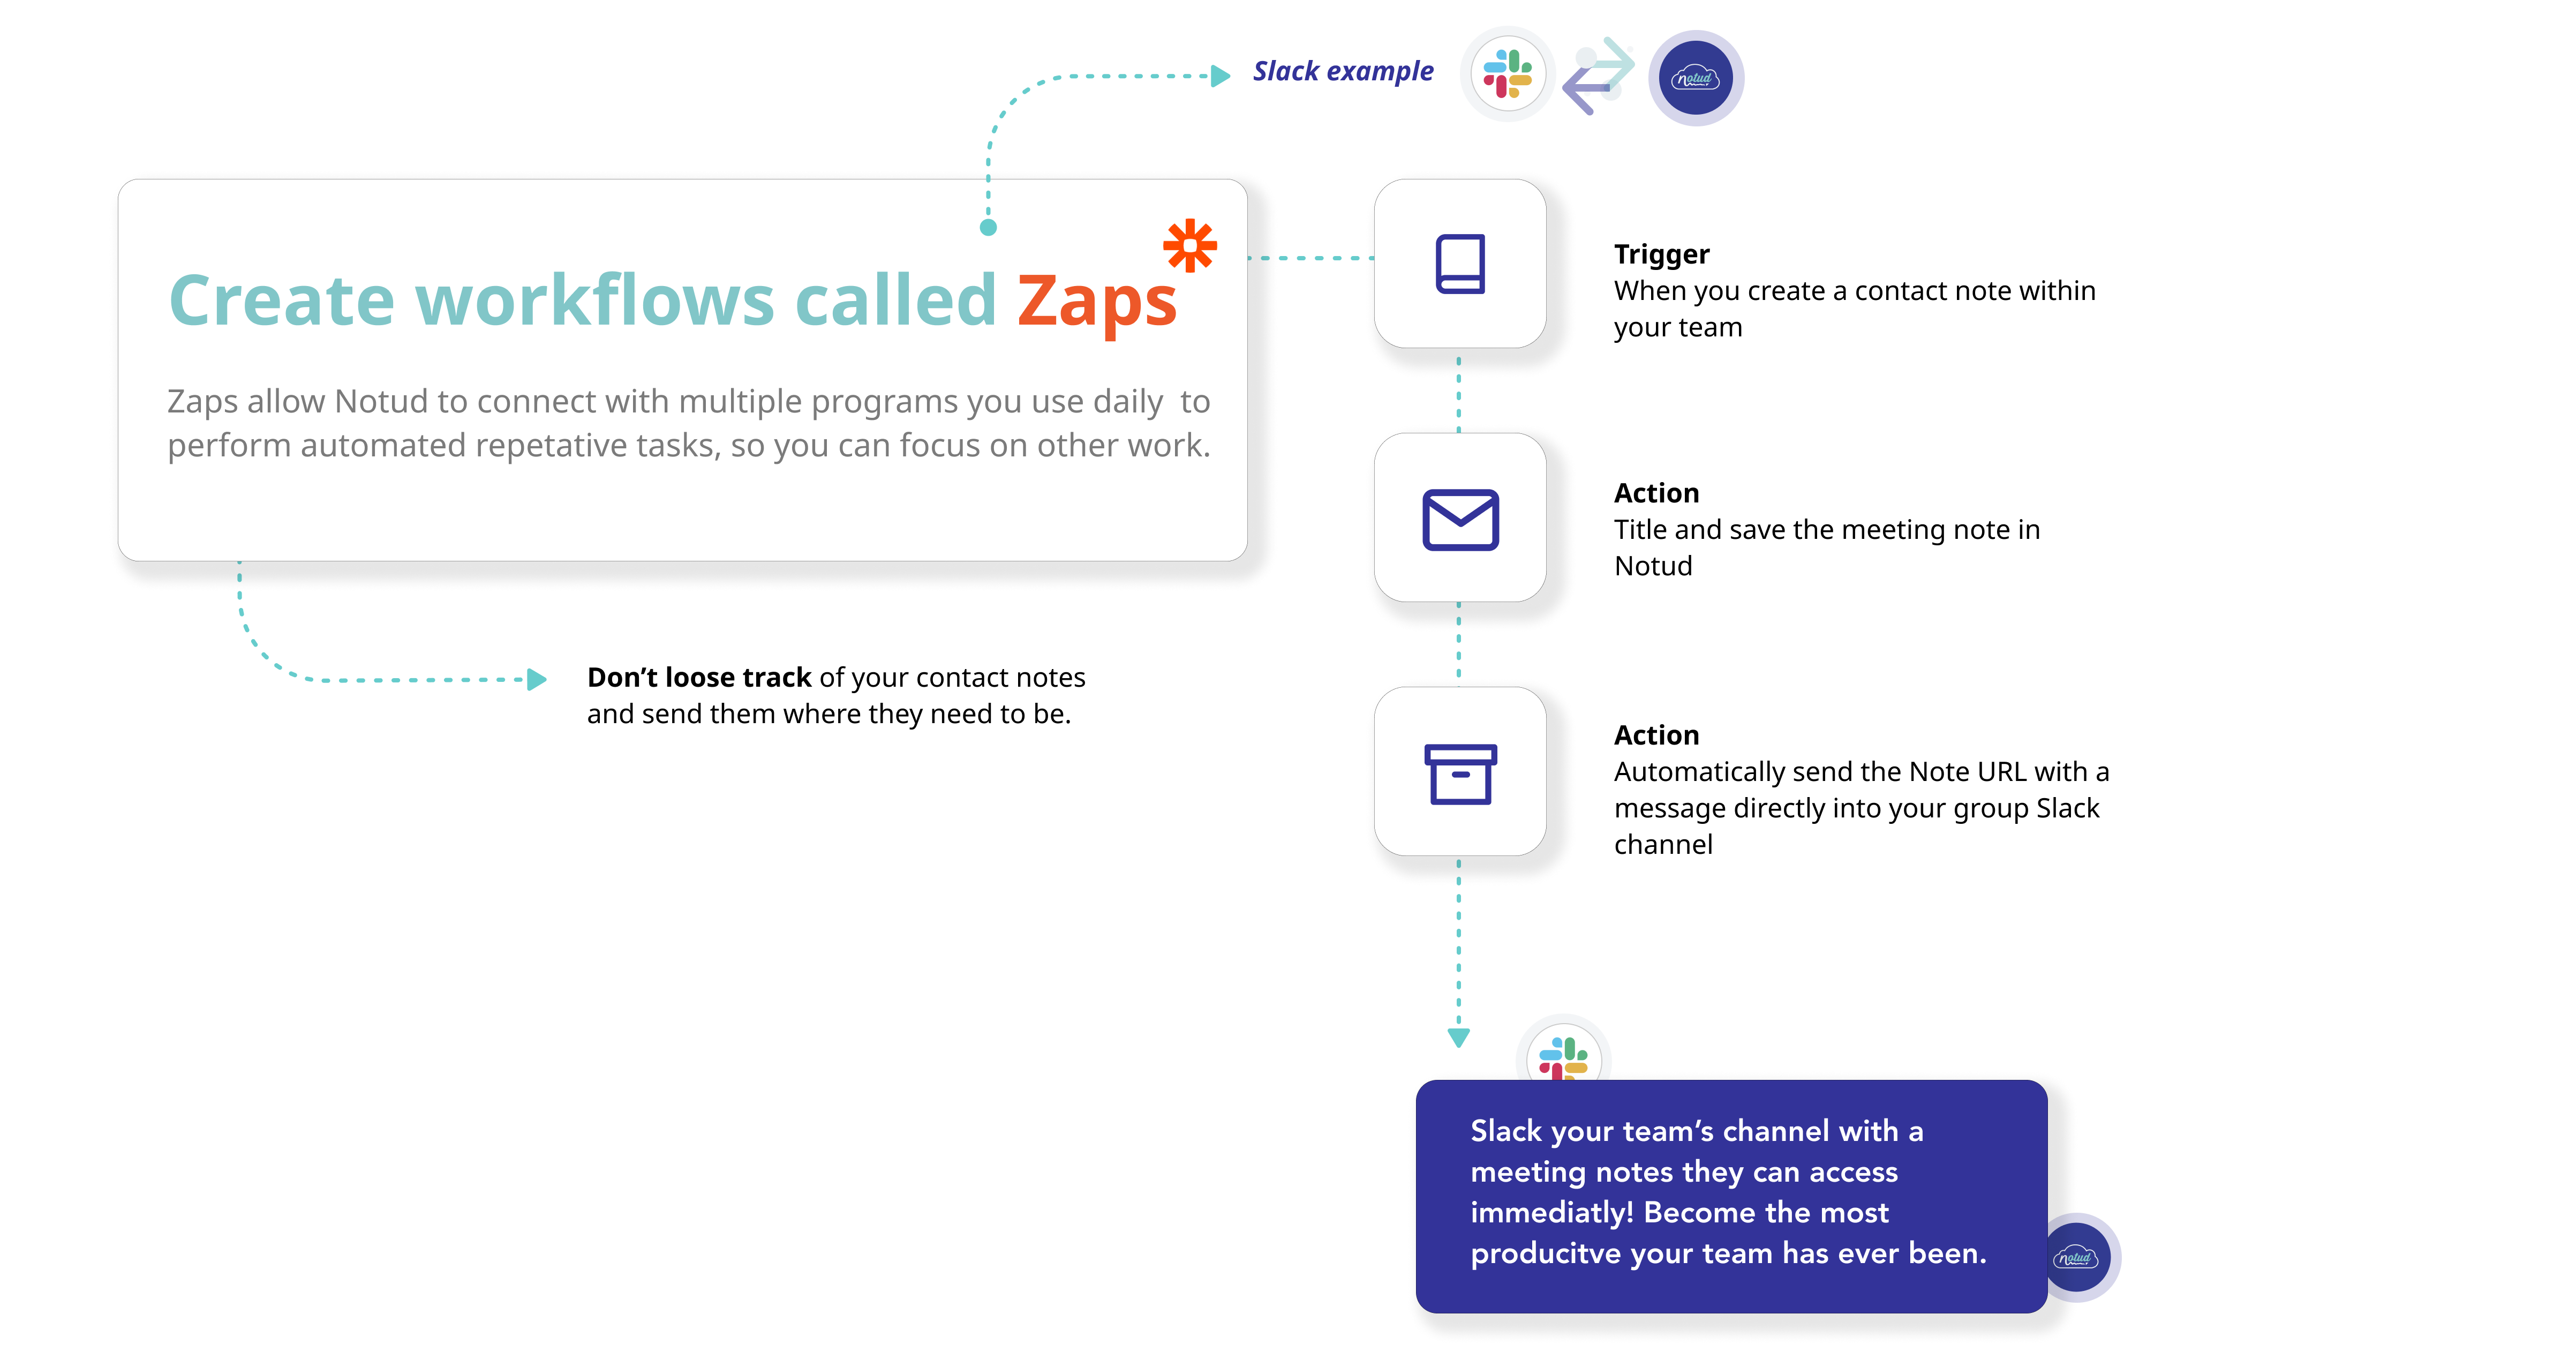 Create workflows called Zaps. Zaps allow Notud to connect with multiple programs you use daily  to perform automated repetative tasks, so you can focus on other work.